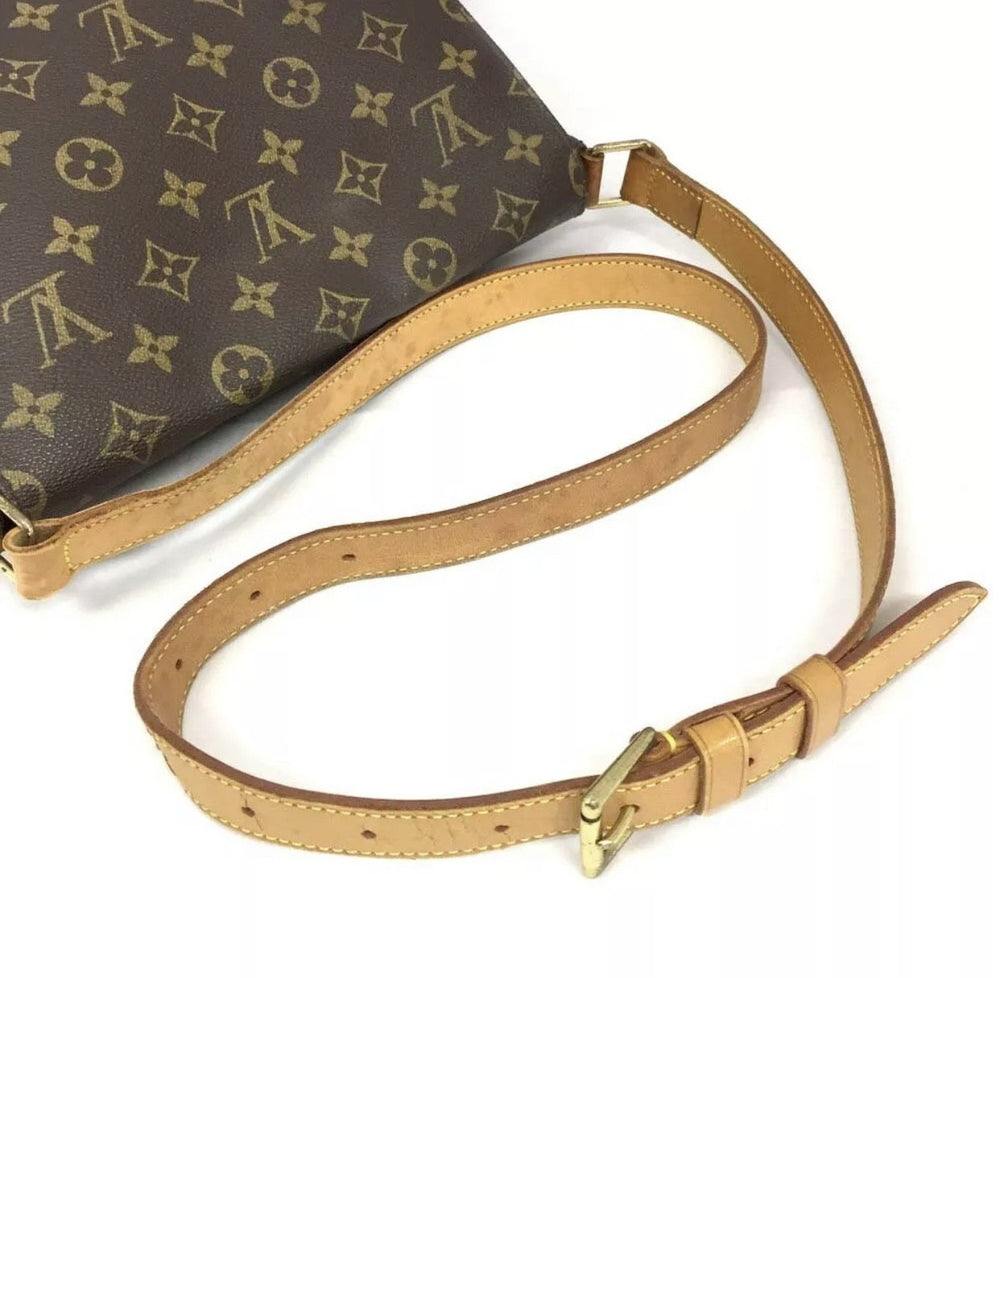 Vintage Monogram Musette GM Crossbody